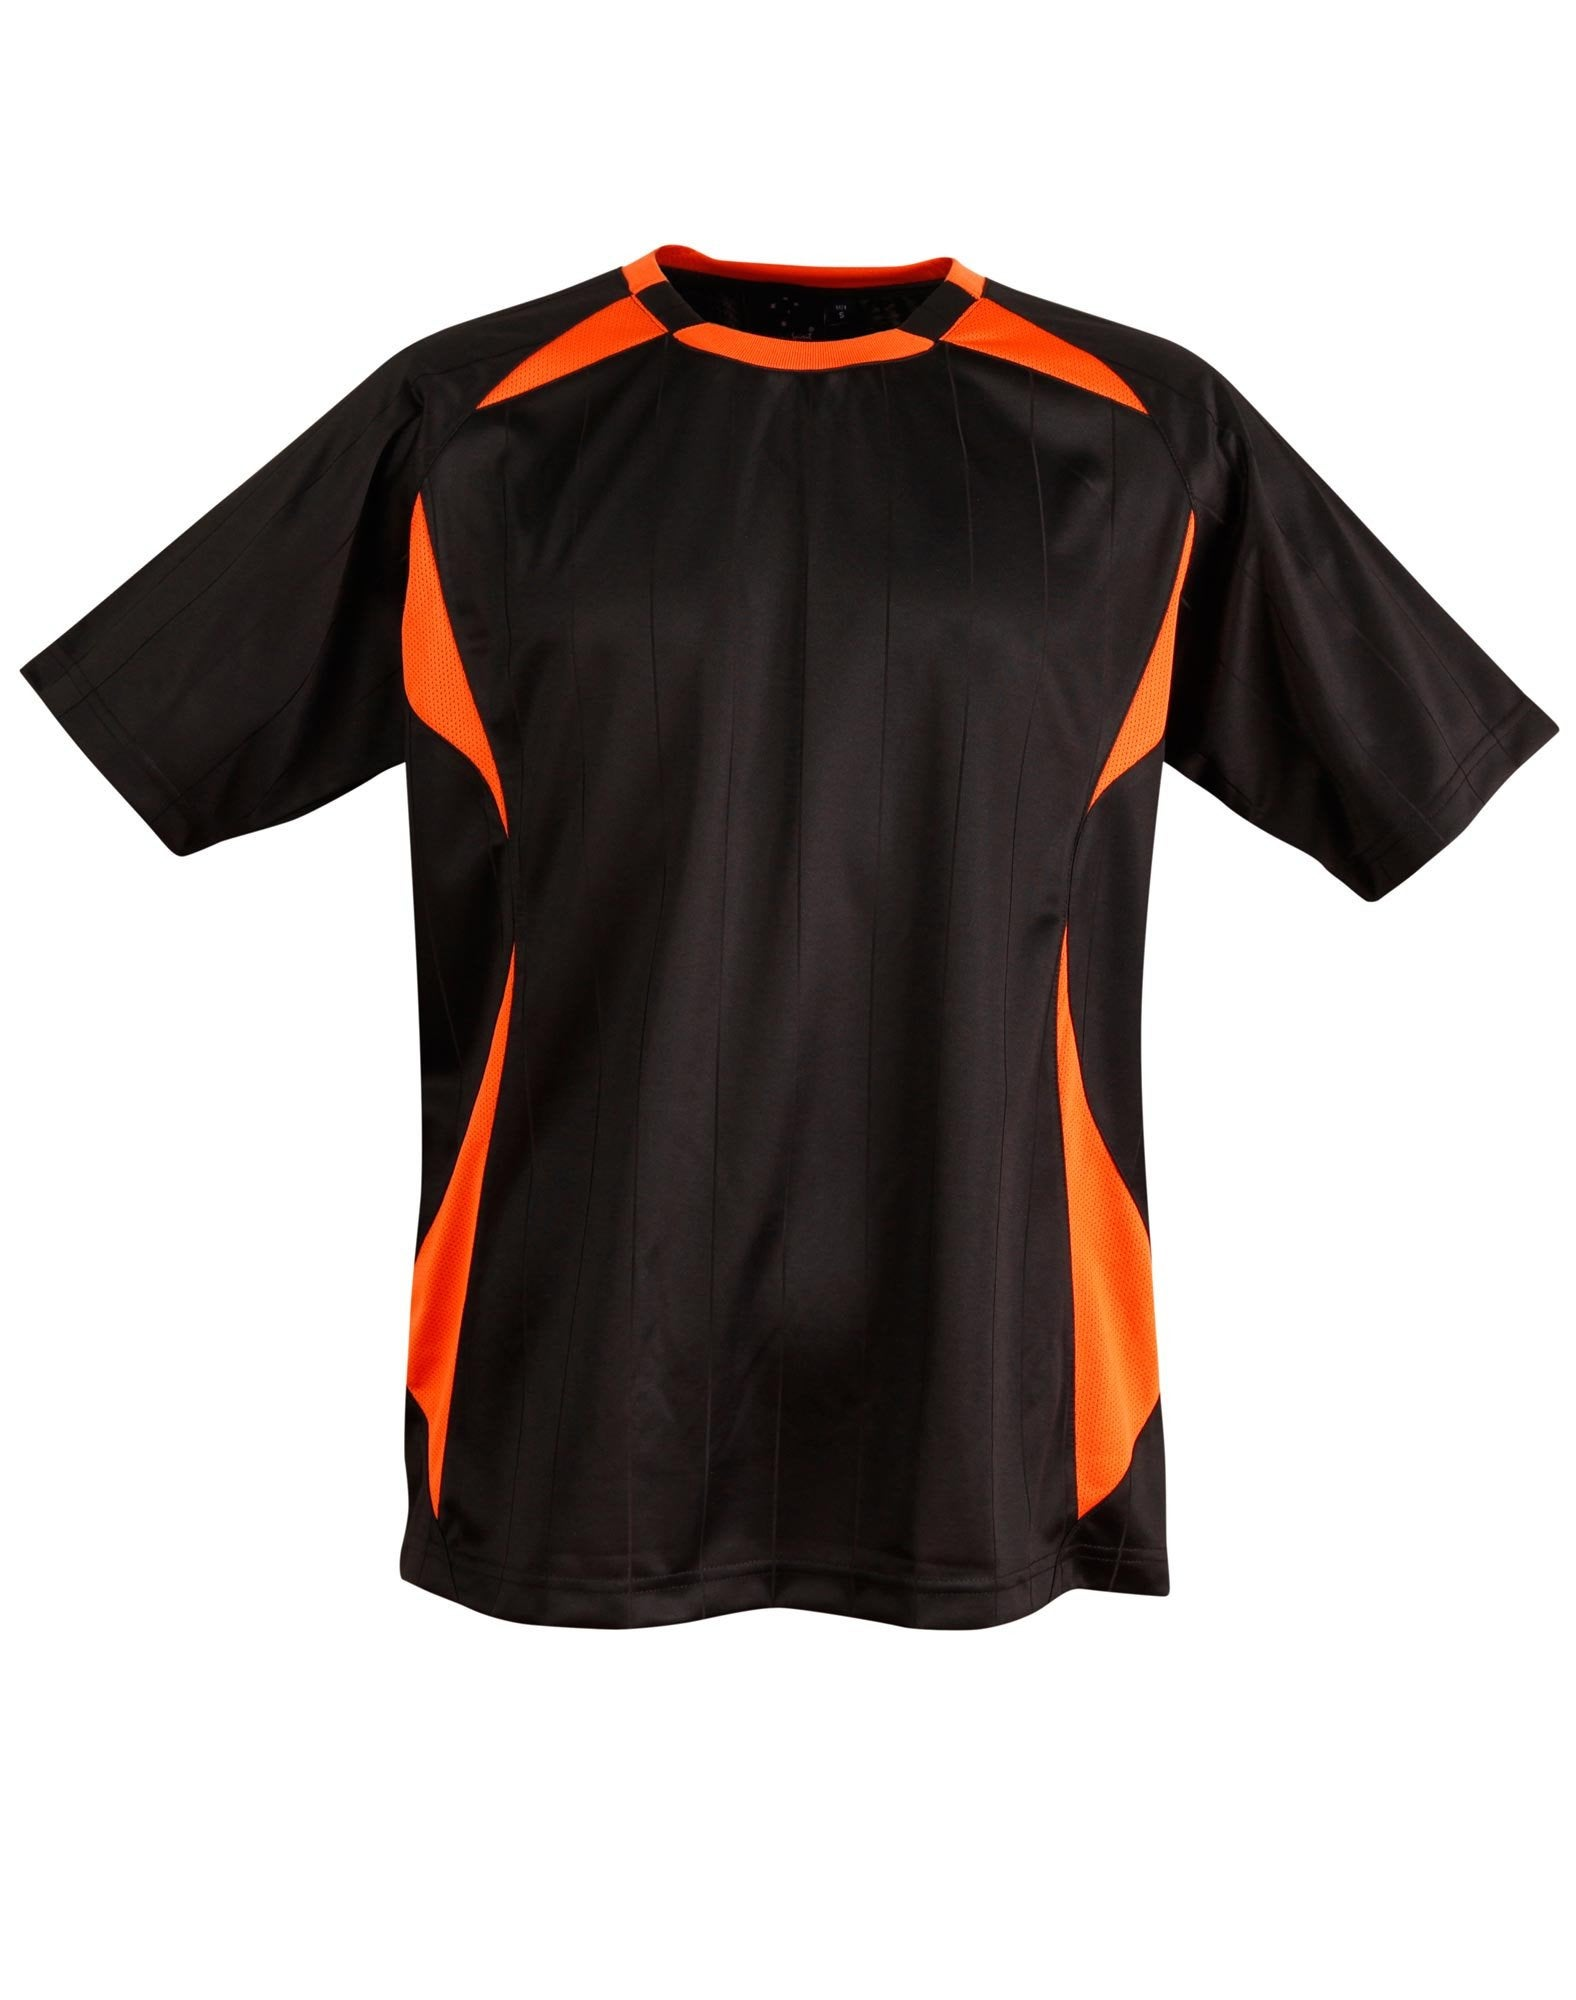 SHOOT SOCCER TEE Adult